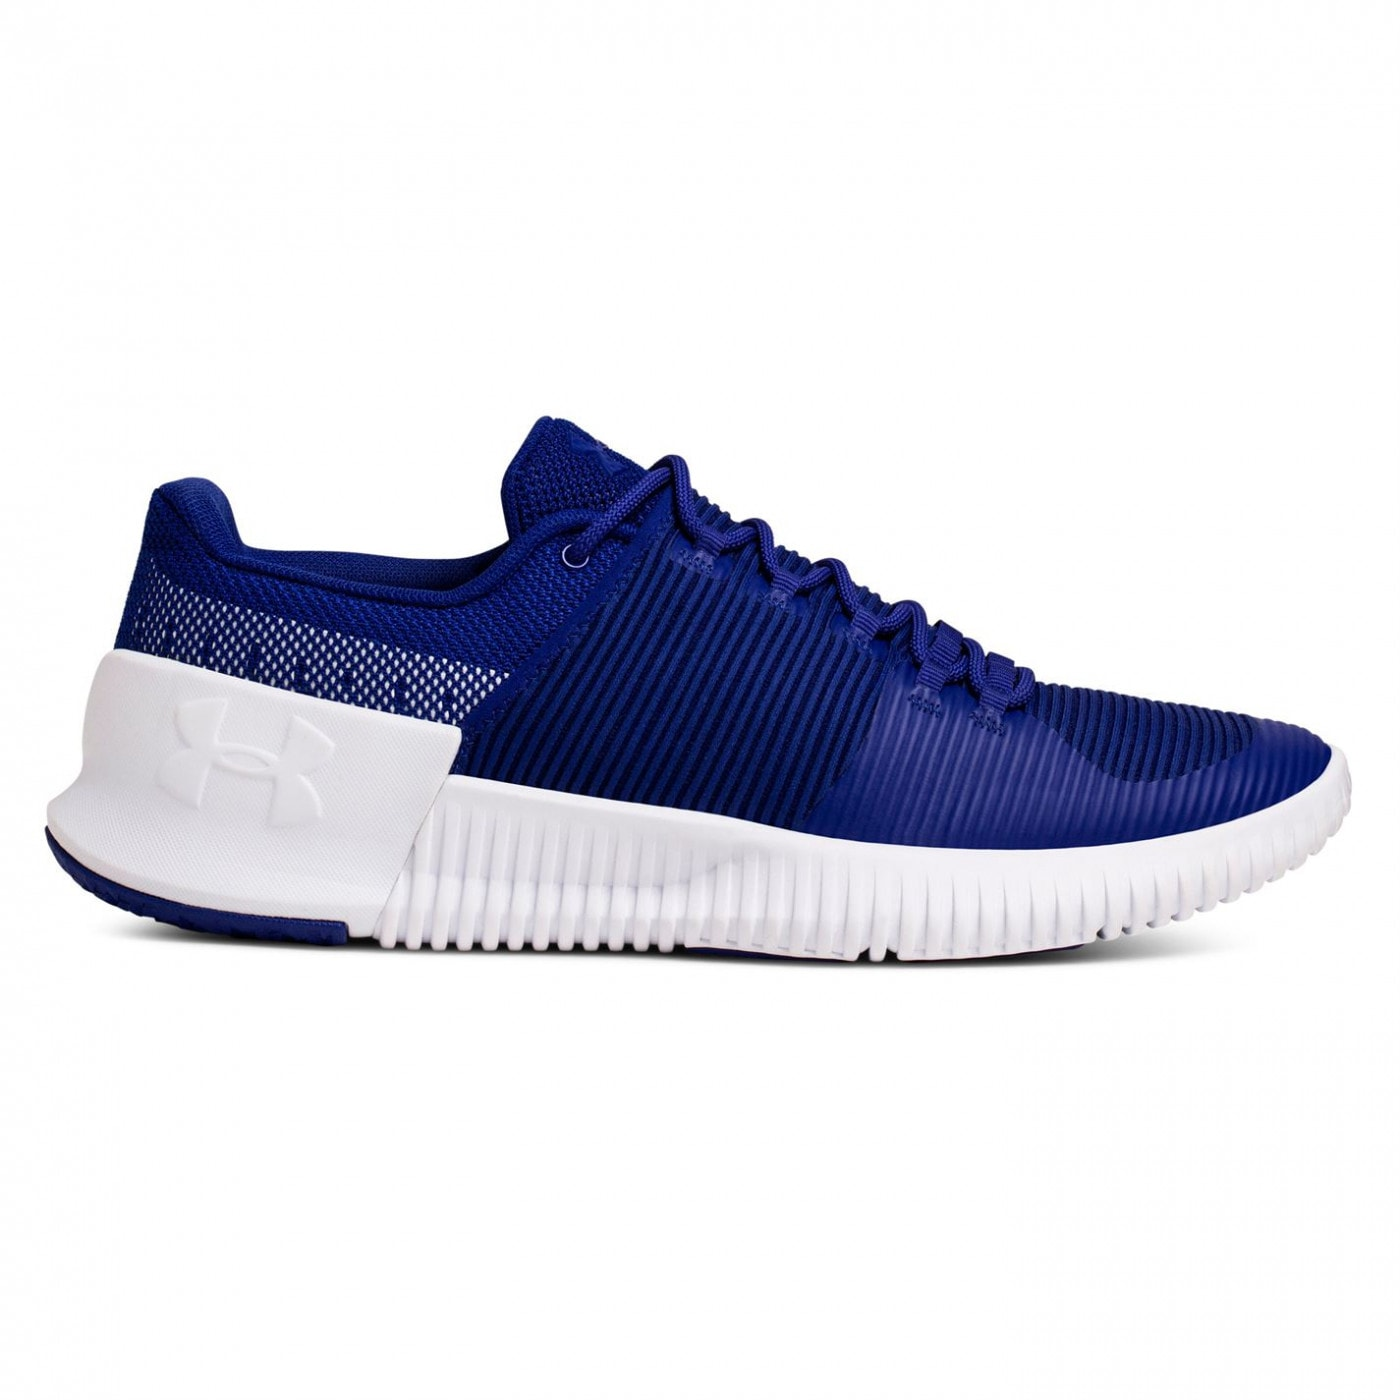 Under Armour Ultimate Speed Mens Trainers